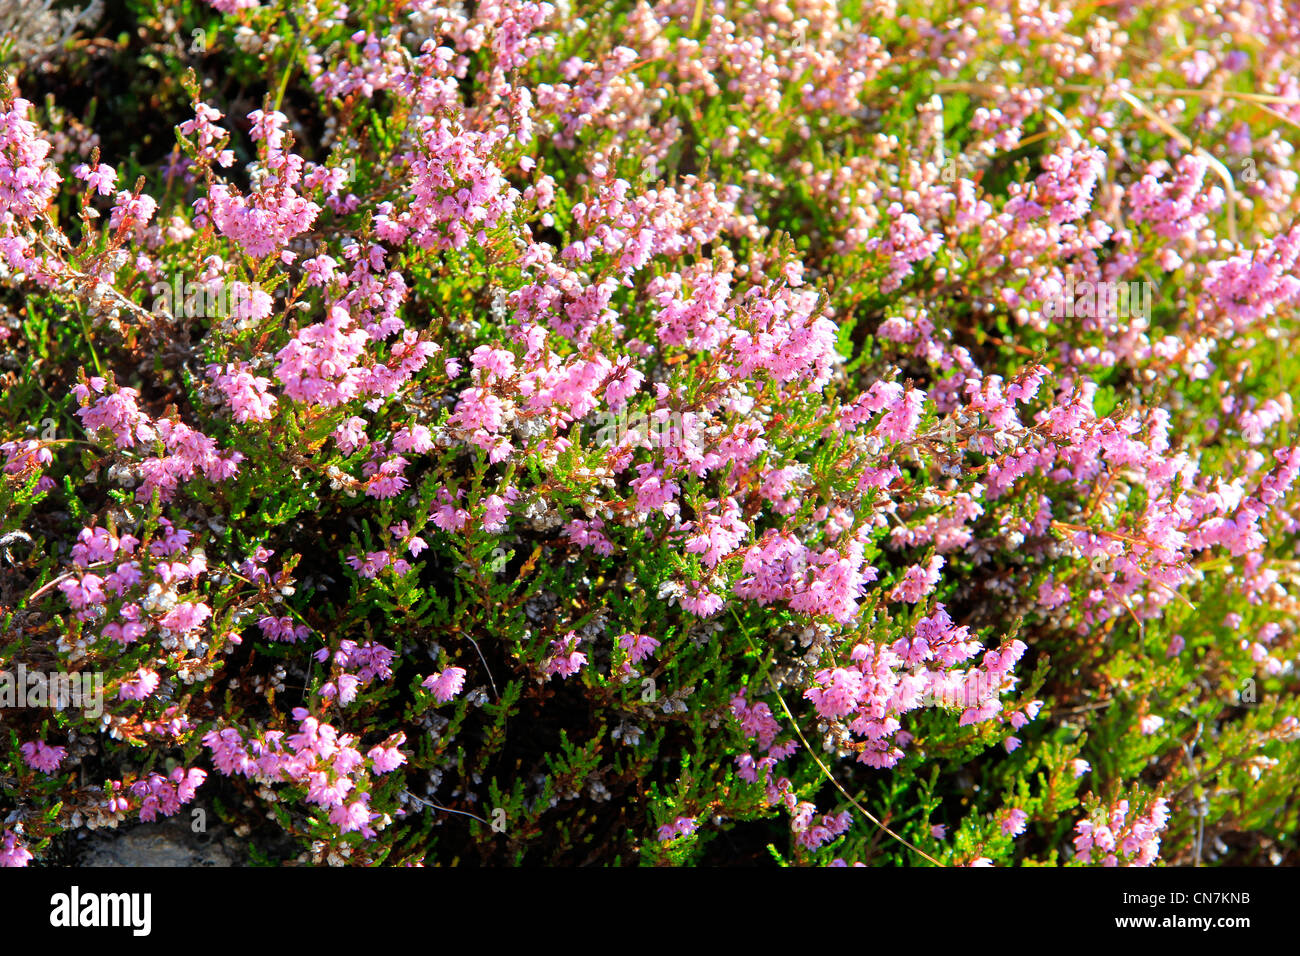 Blooming wildflowers, Ericaceae, in the fall - Stock Image